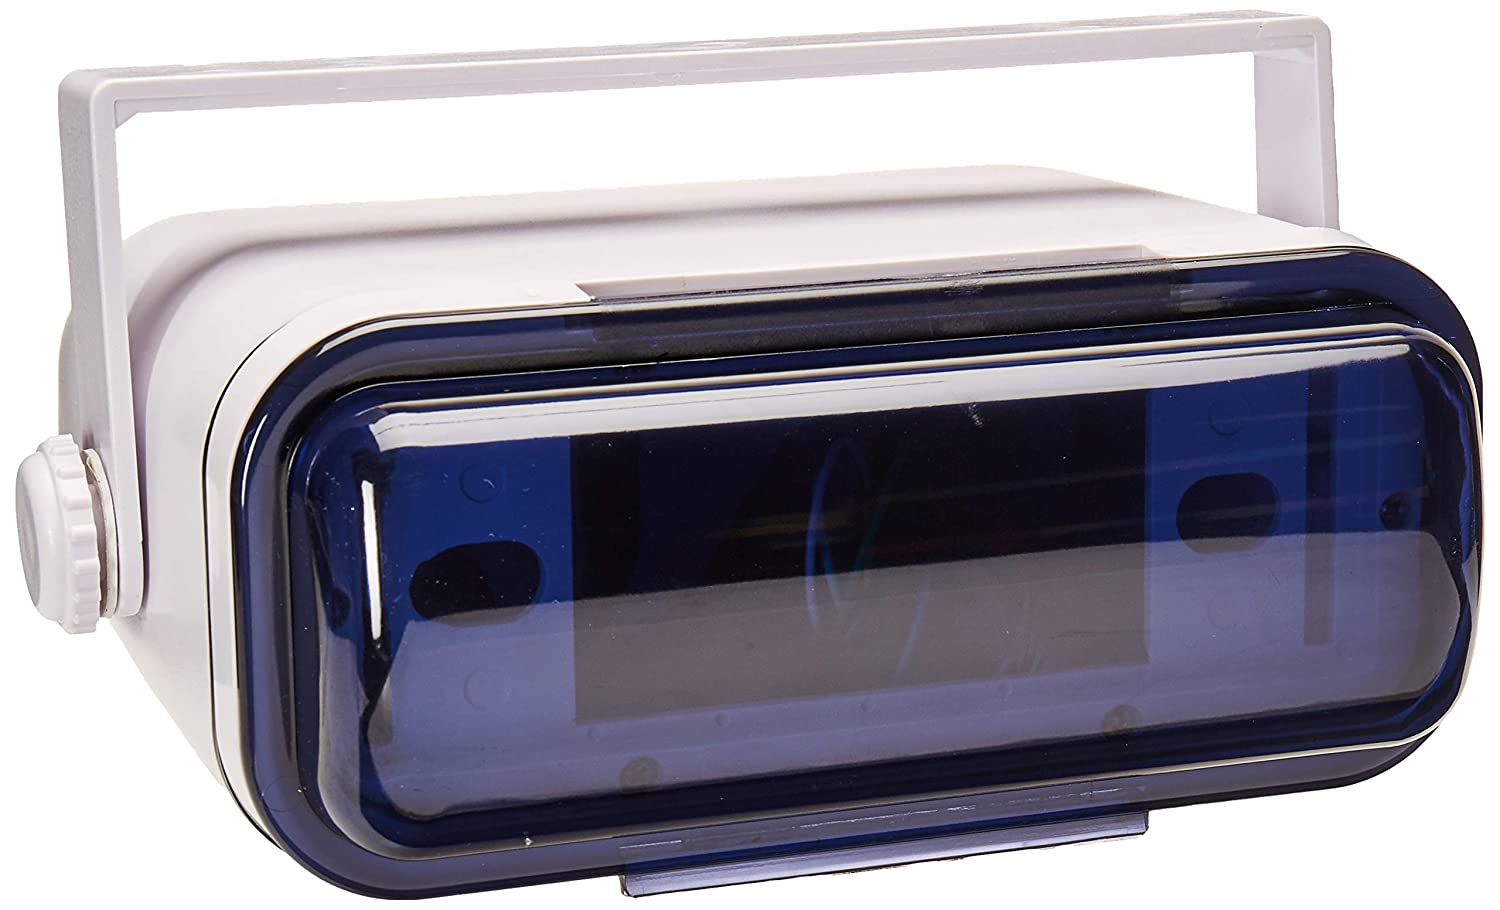 Pyle PLMRCW3 Universal Marine Stereo Housing Full Chassis Wired Casing White